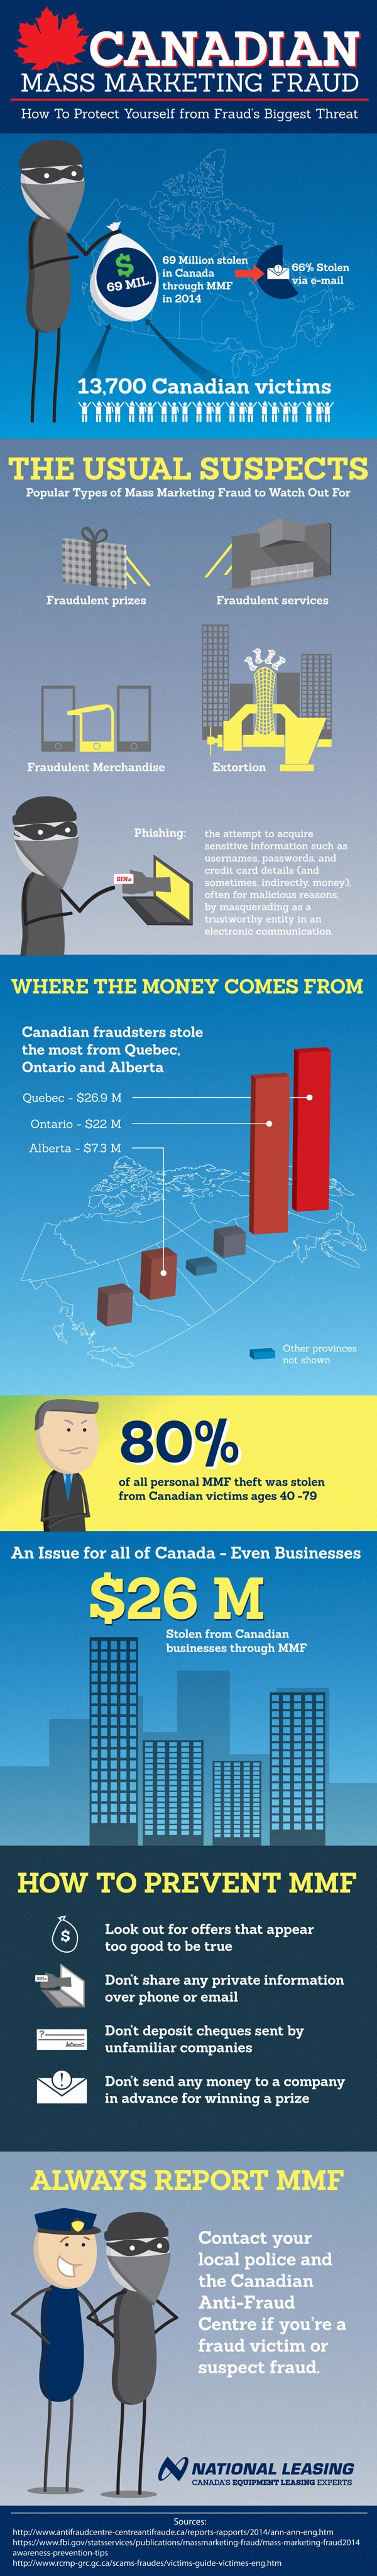 Canadian Mass Marketing Fraud Infographic